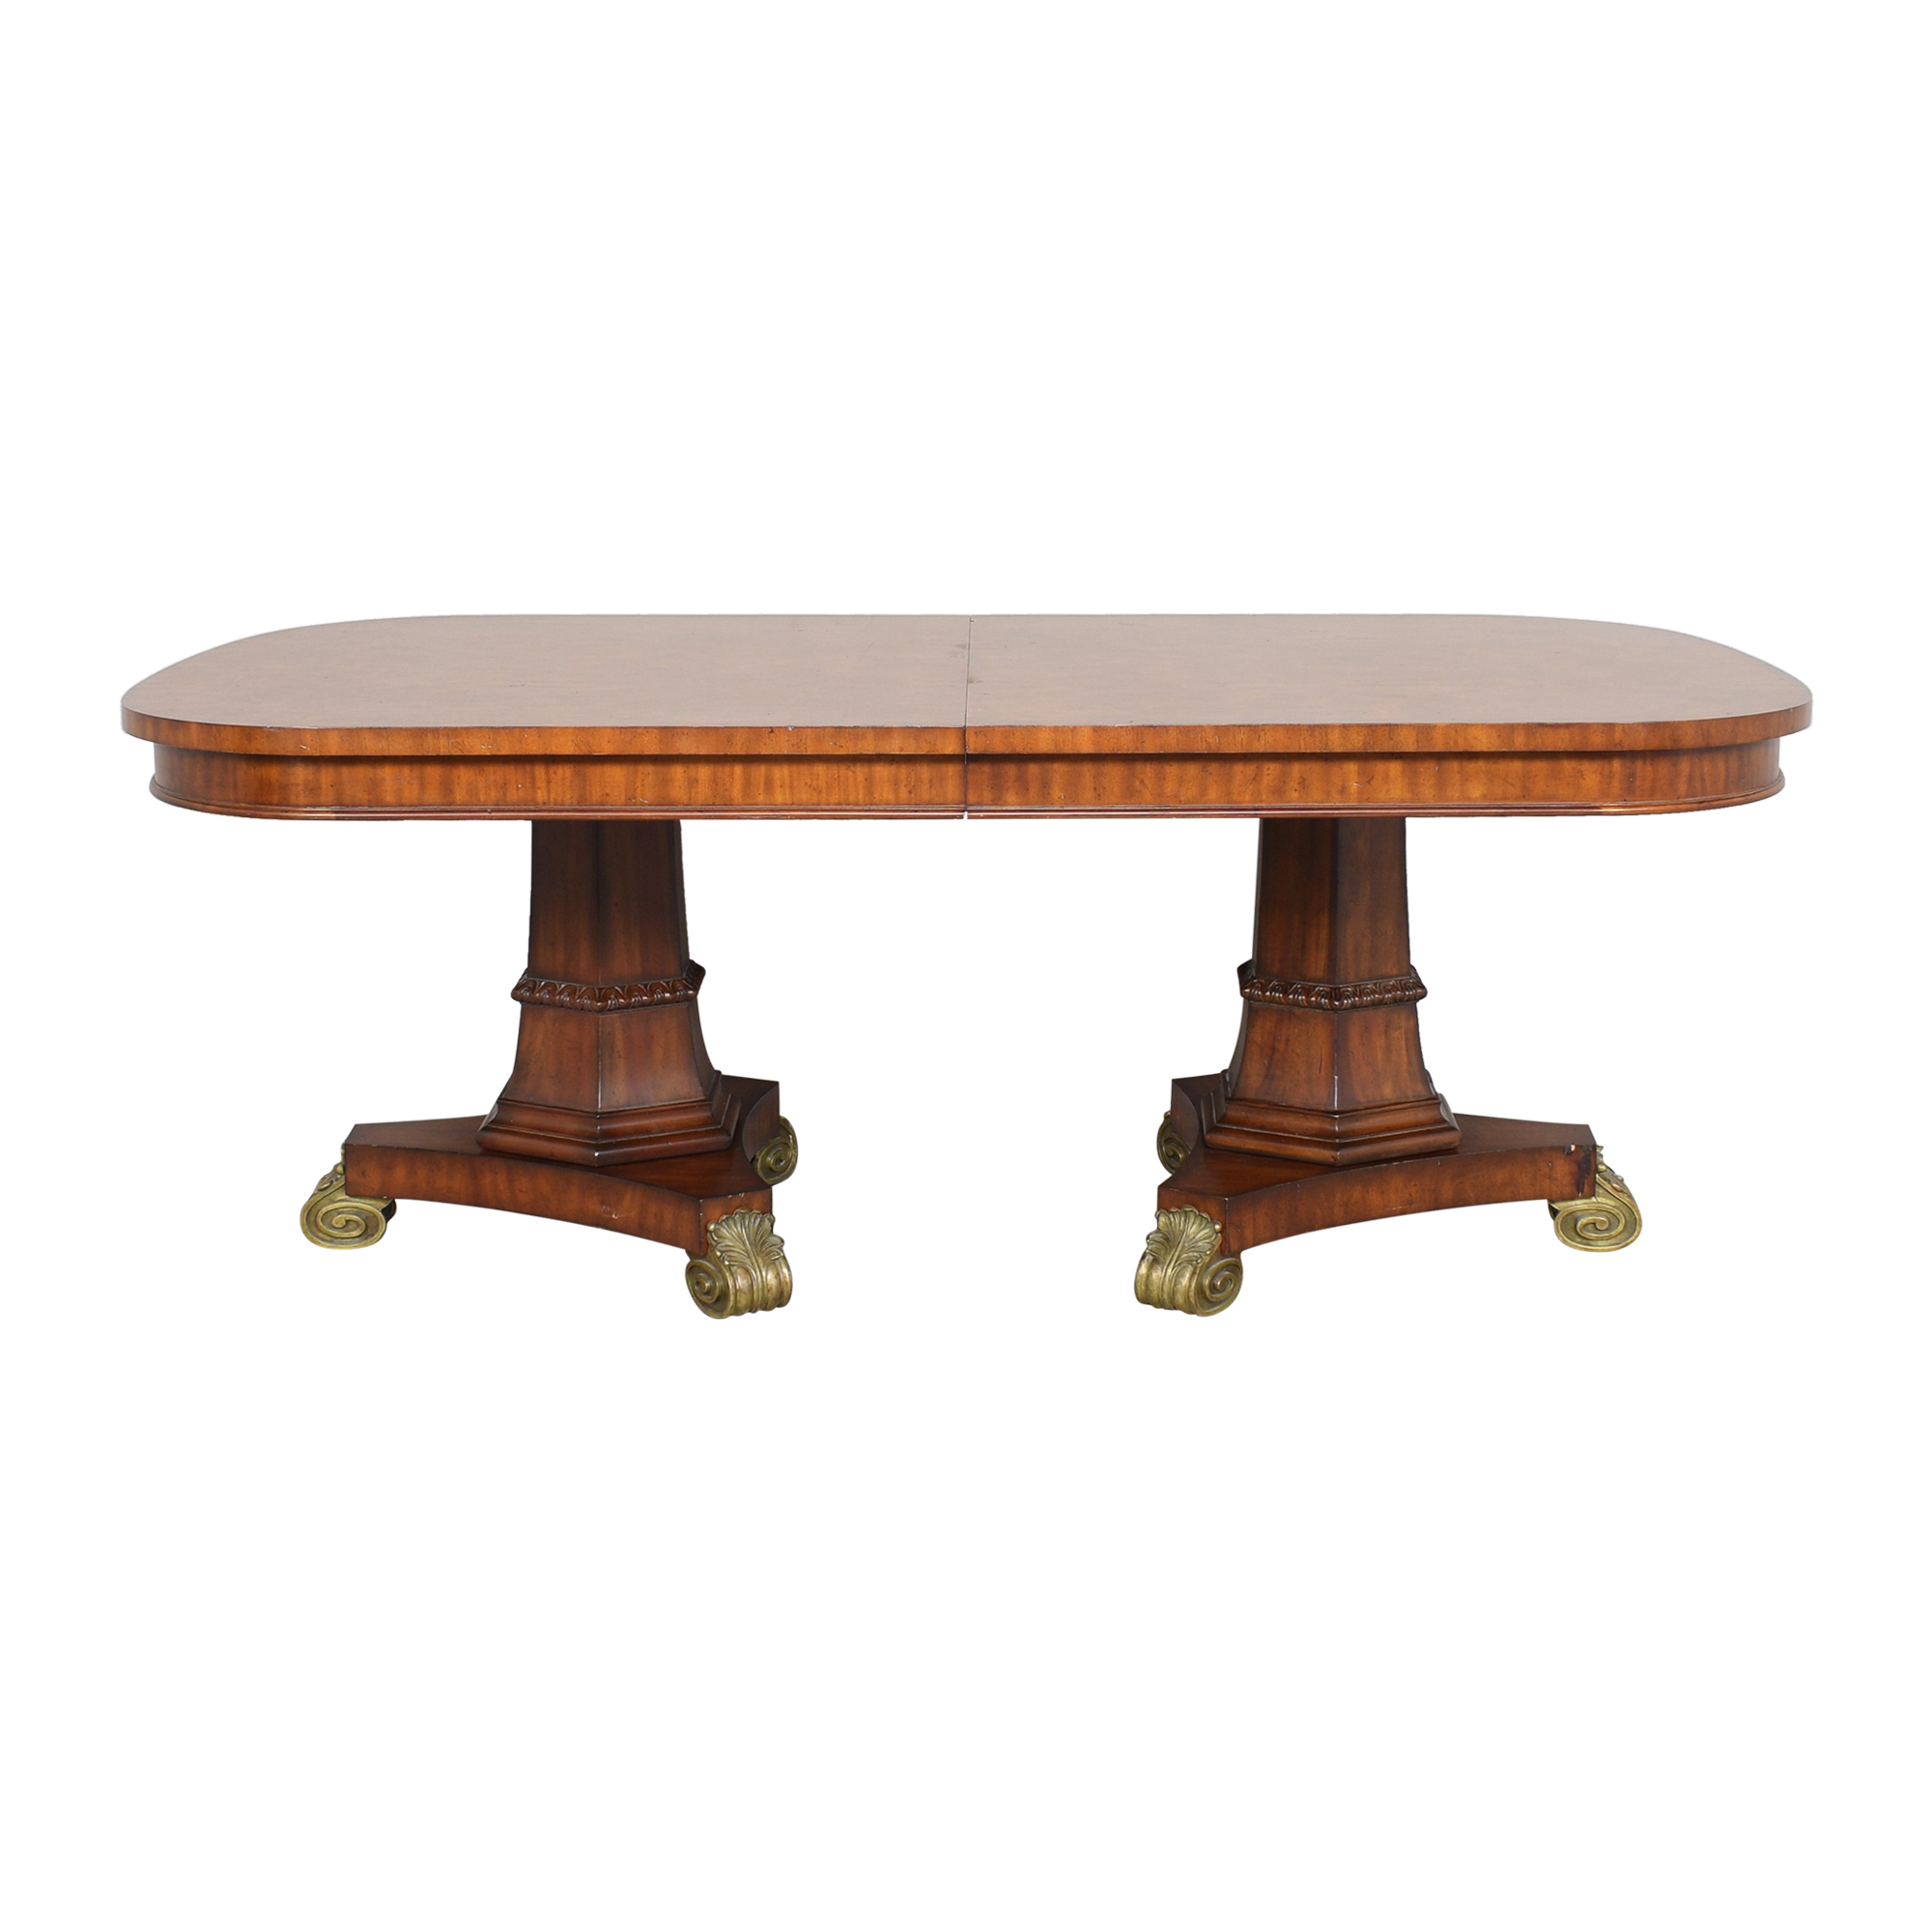 Thomasville Thomasville Ernest Hemingway Dining Table ct